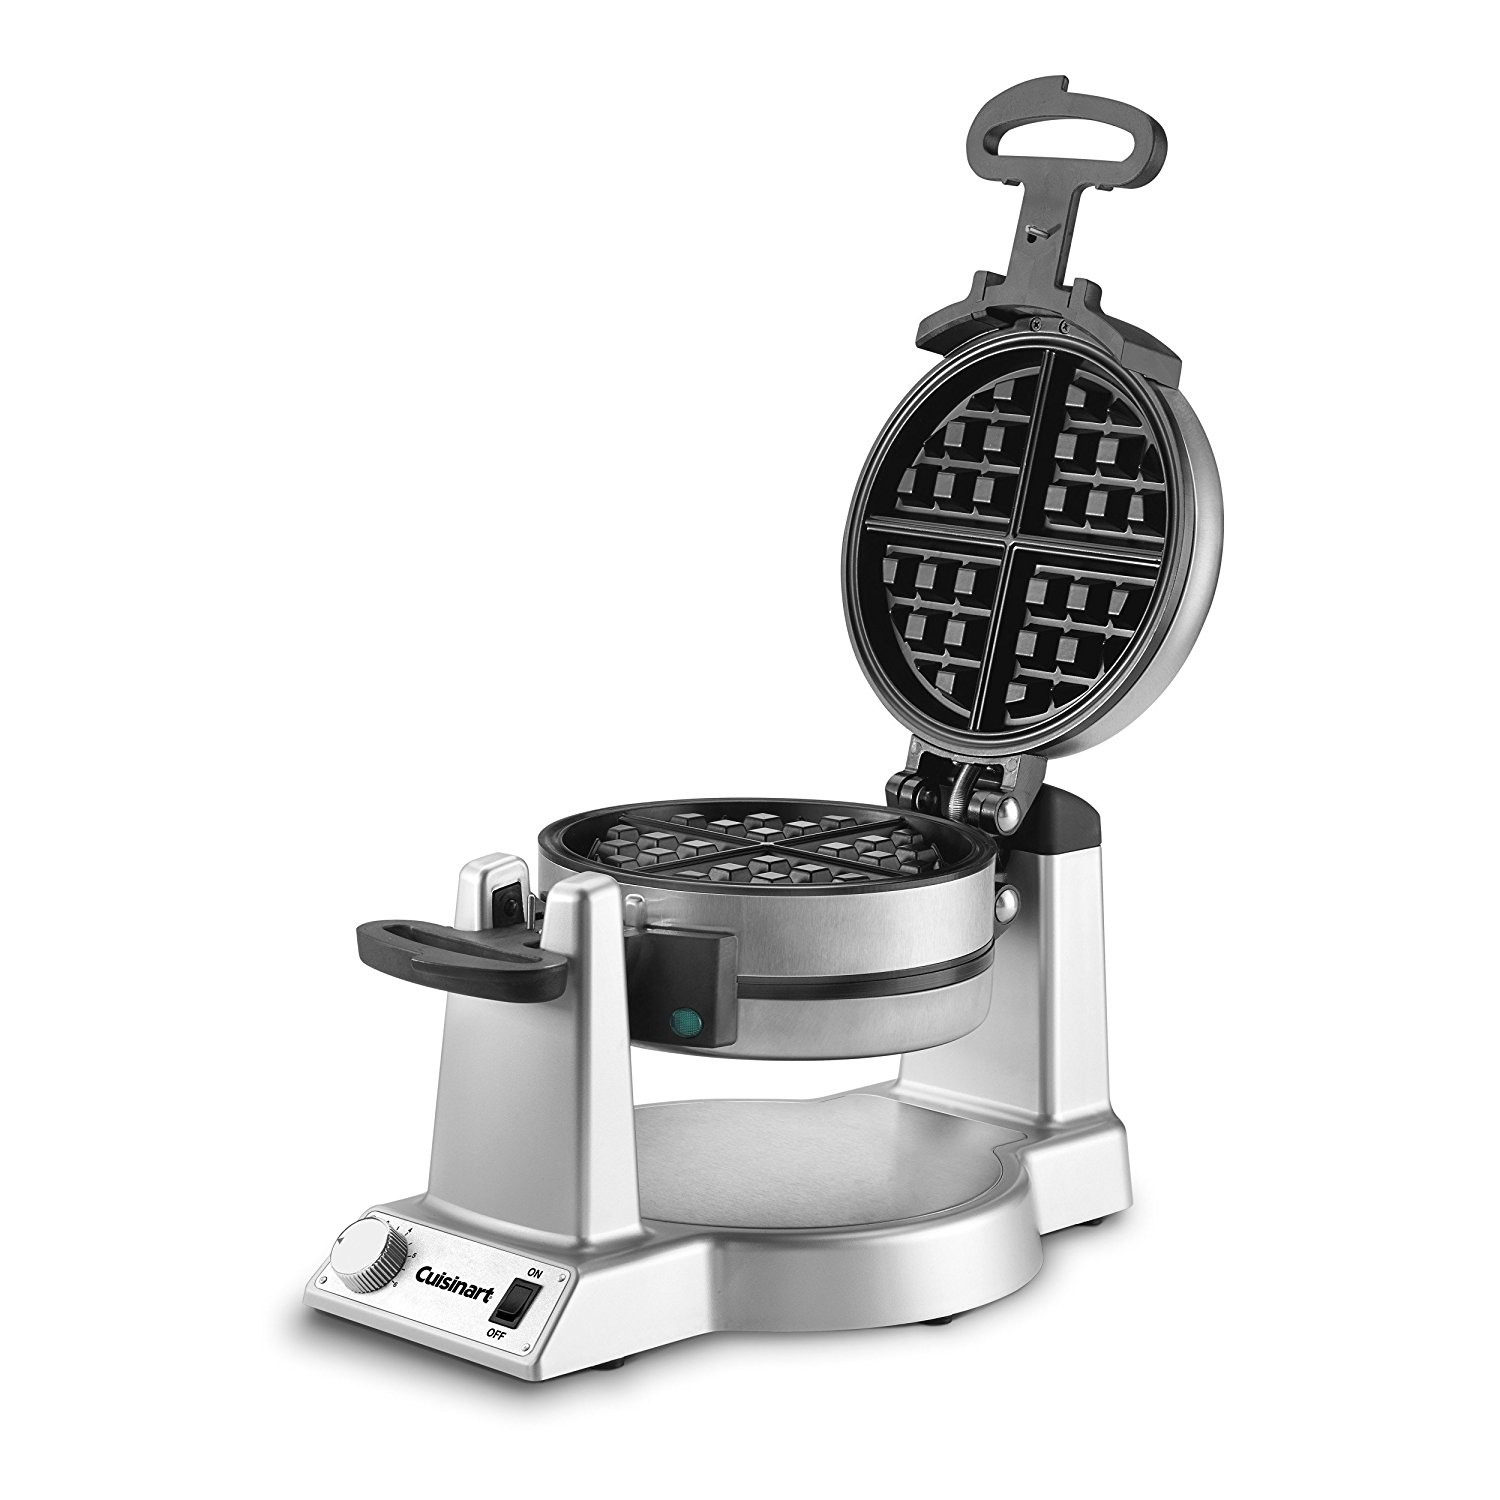 Cuisinart WAF-F20 Double Belgian Waffle Maker, Stainless Steel (Certified Refurbished)